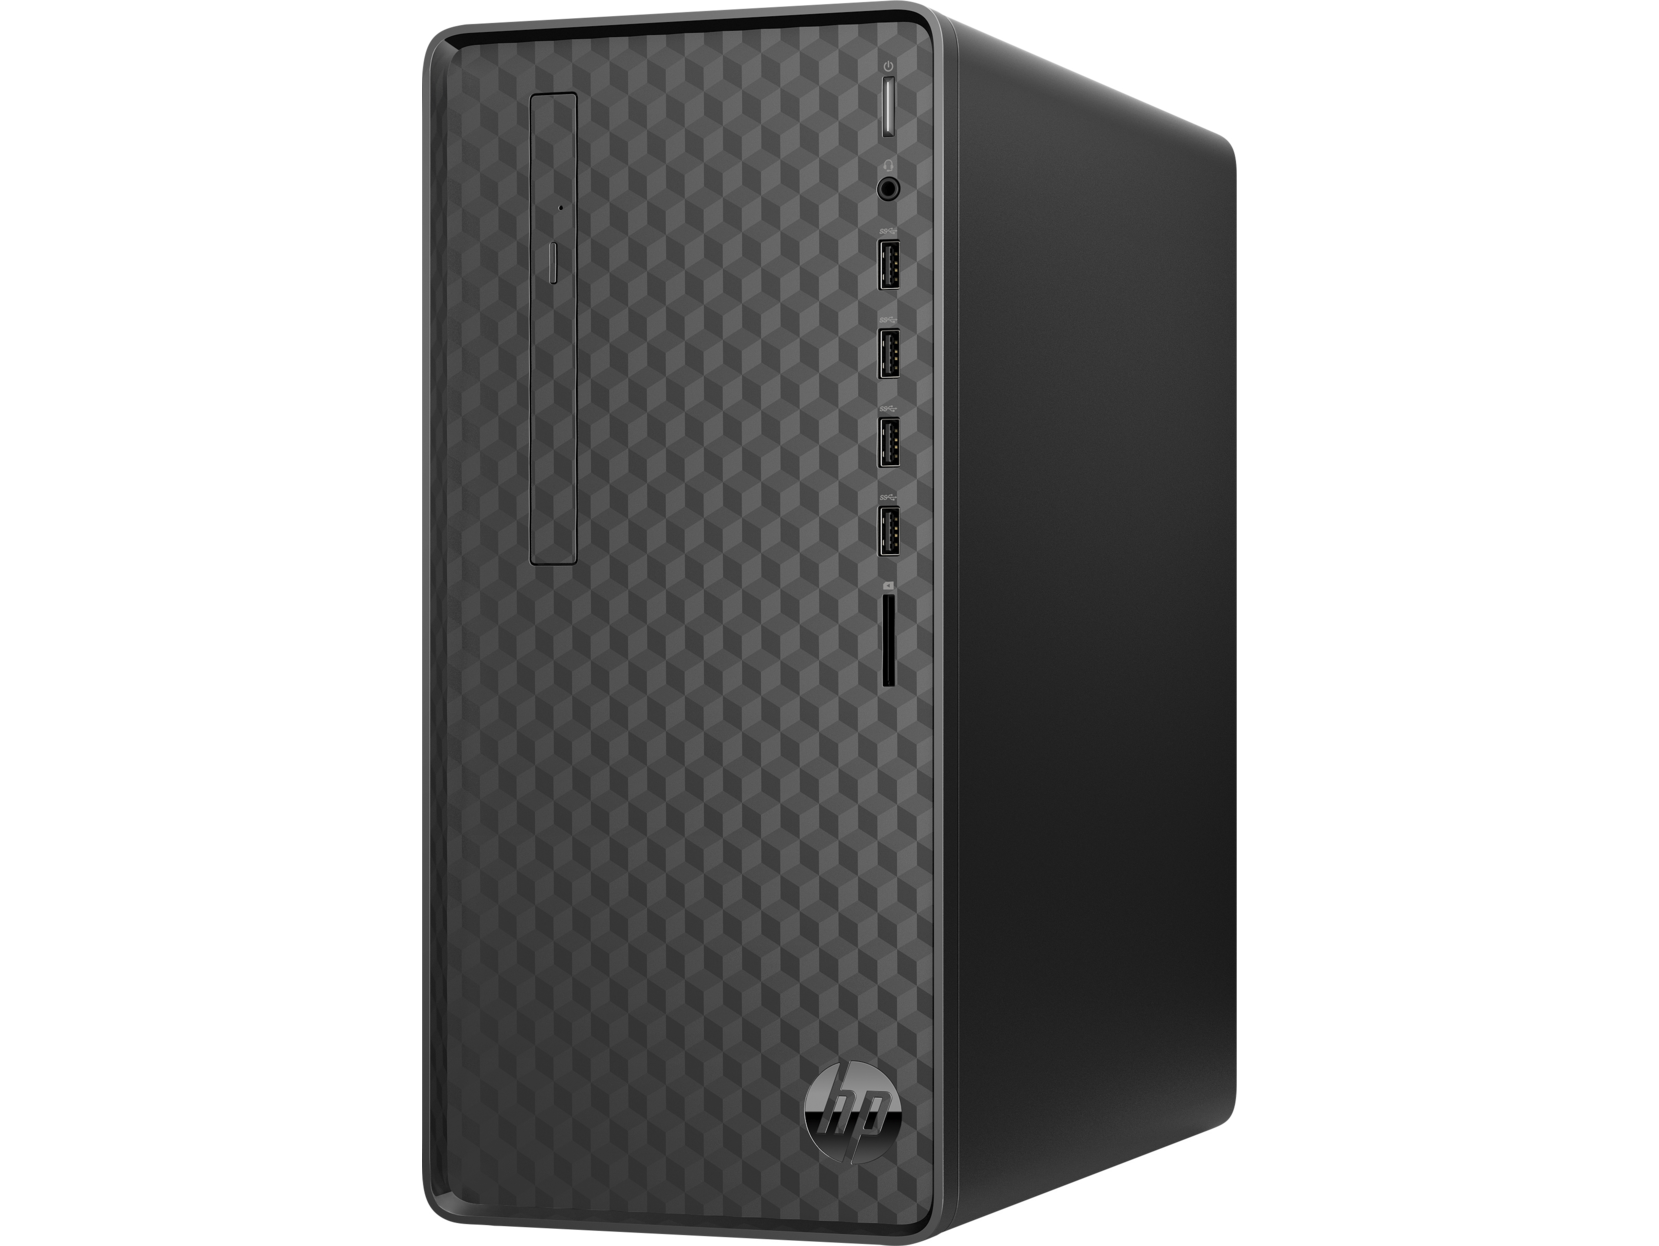 HP Desktop Computer M01-F0057C Intel Core i3 9th Gen 9100 (3.60 GHz) 8 GB DDR4 128 GB PCIe SSD Intel UHD Graphics 630 Windows 10 Home 64-bit